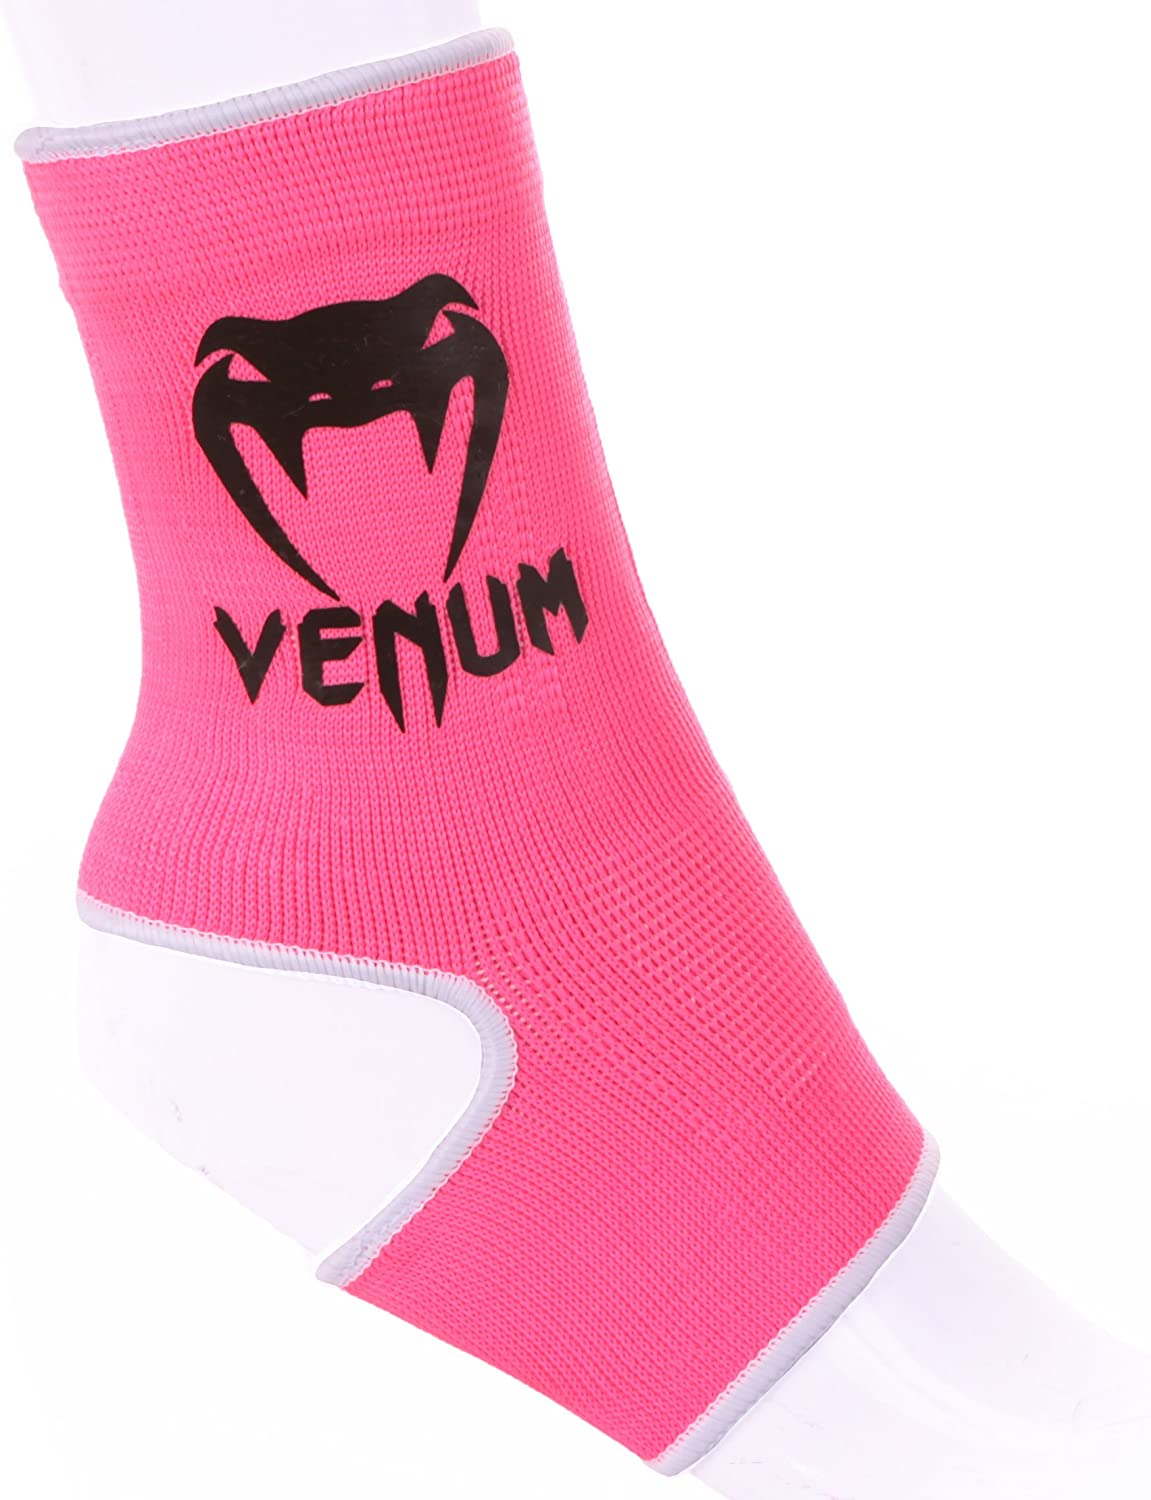 Venum Muay Thai/Kick Boxing Ankle Support Guard, Pink : Foot Supports : Sports & Outdoors